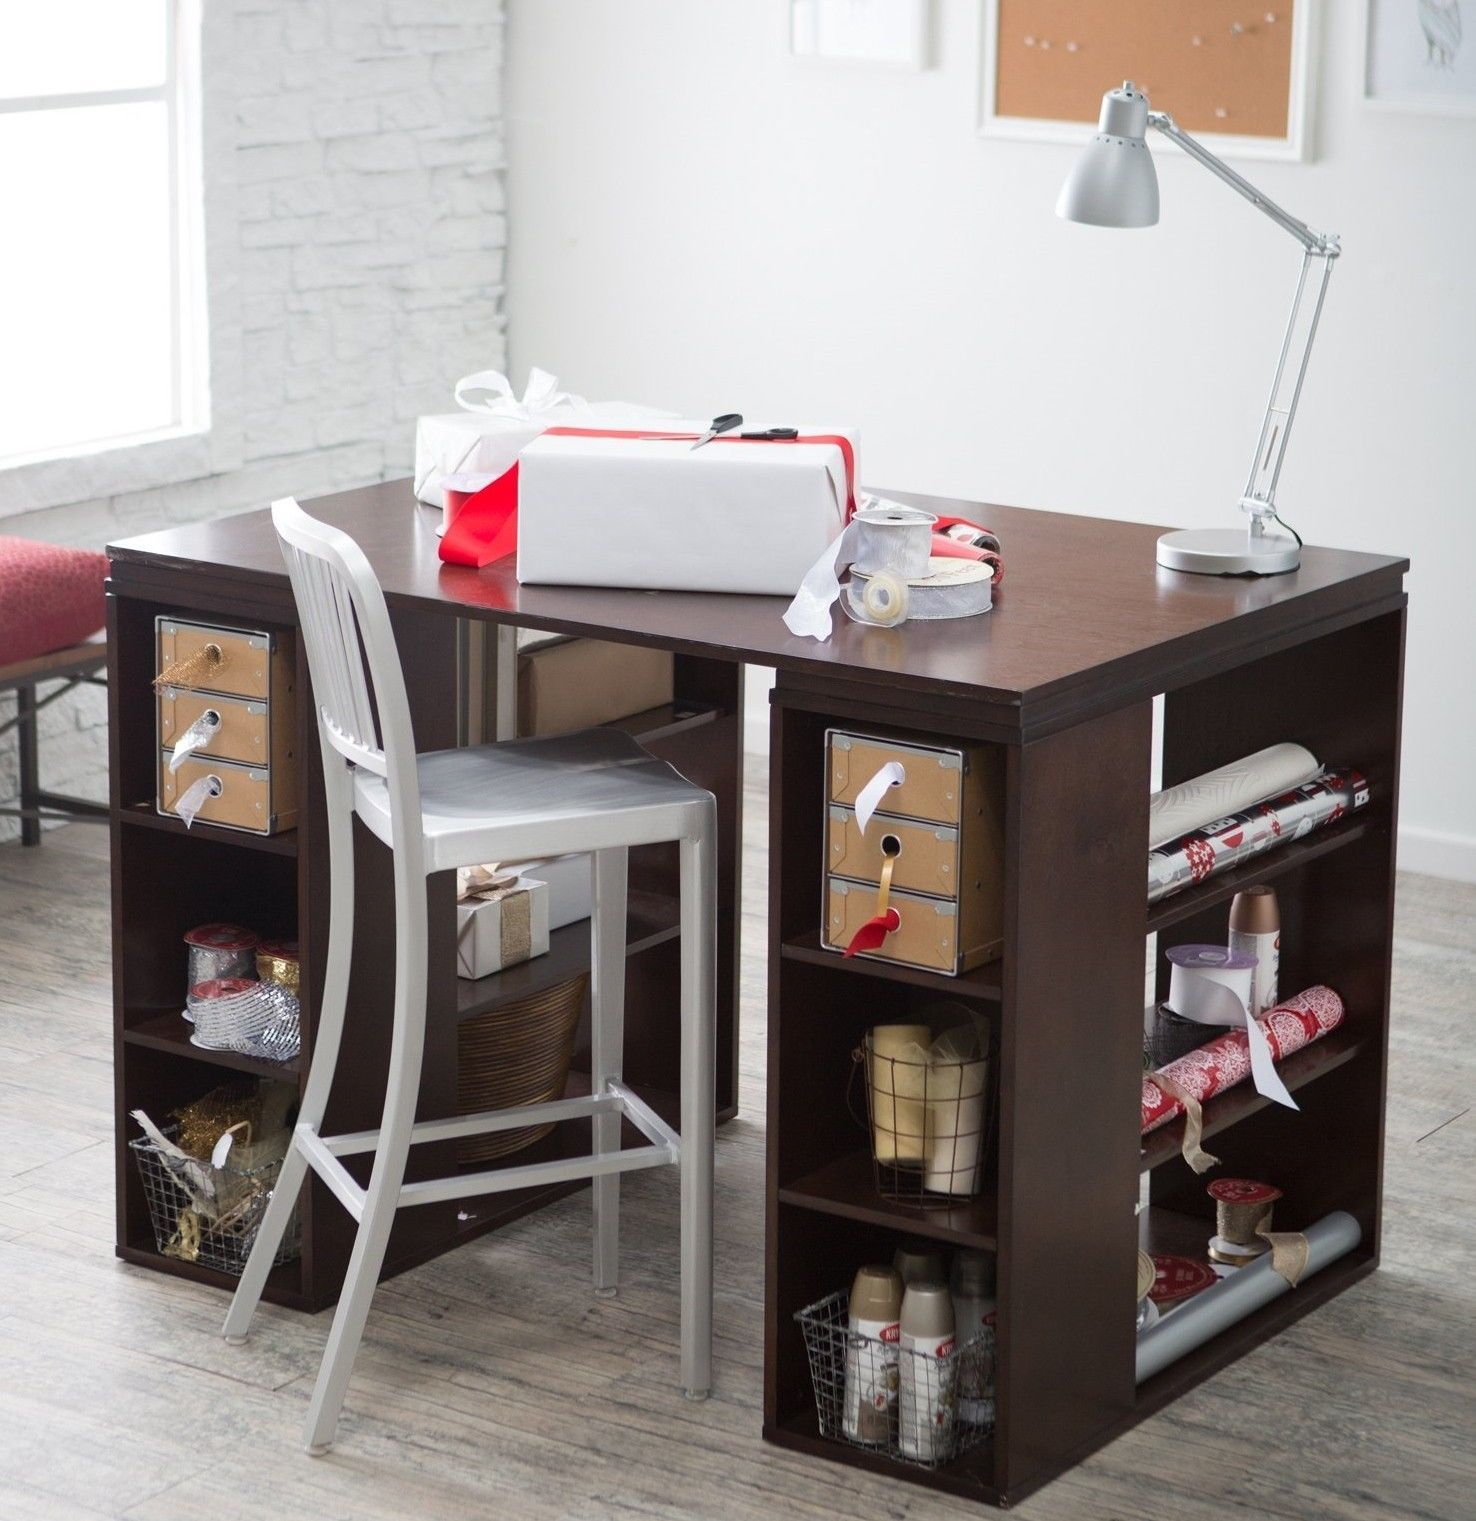 ? whyandyks booth ? Counter Height Desk Espresso Furniture Office ...